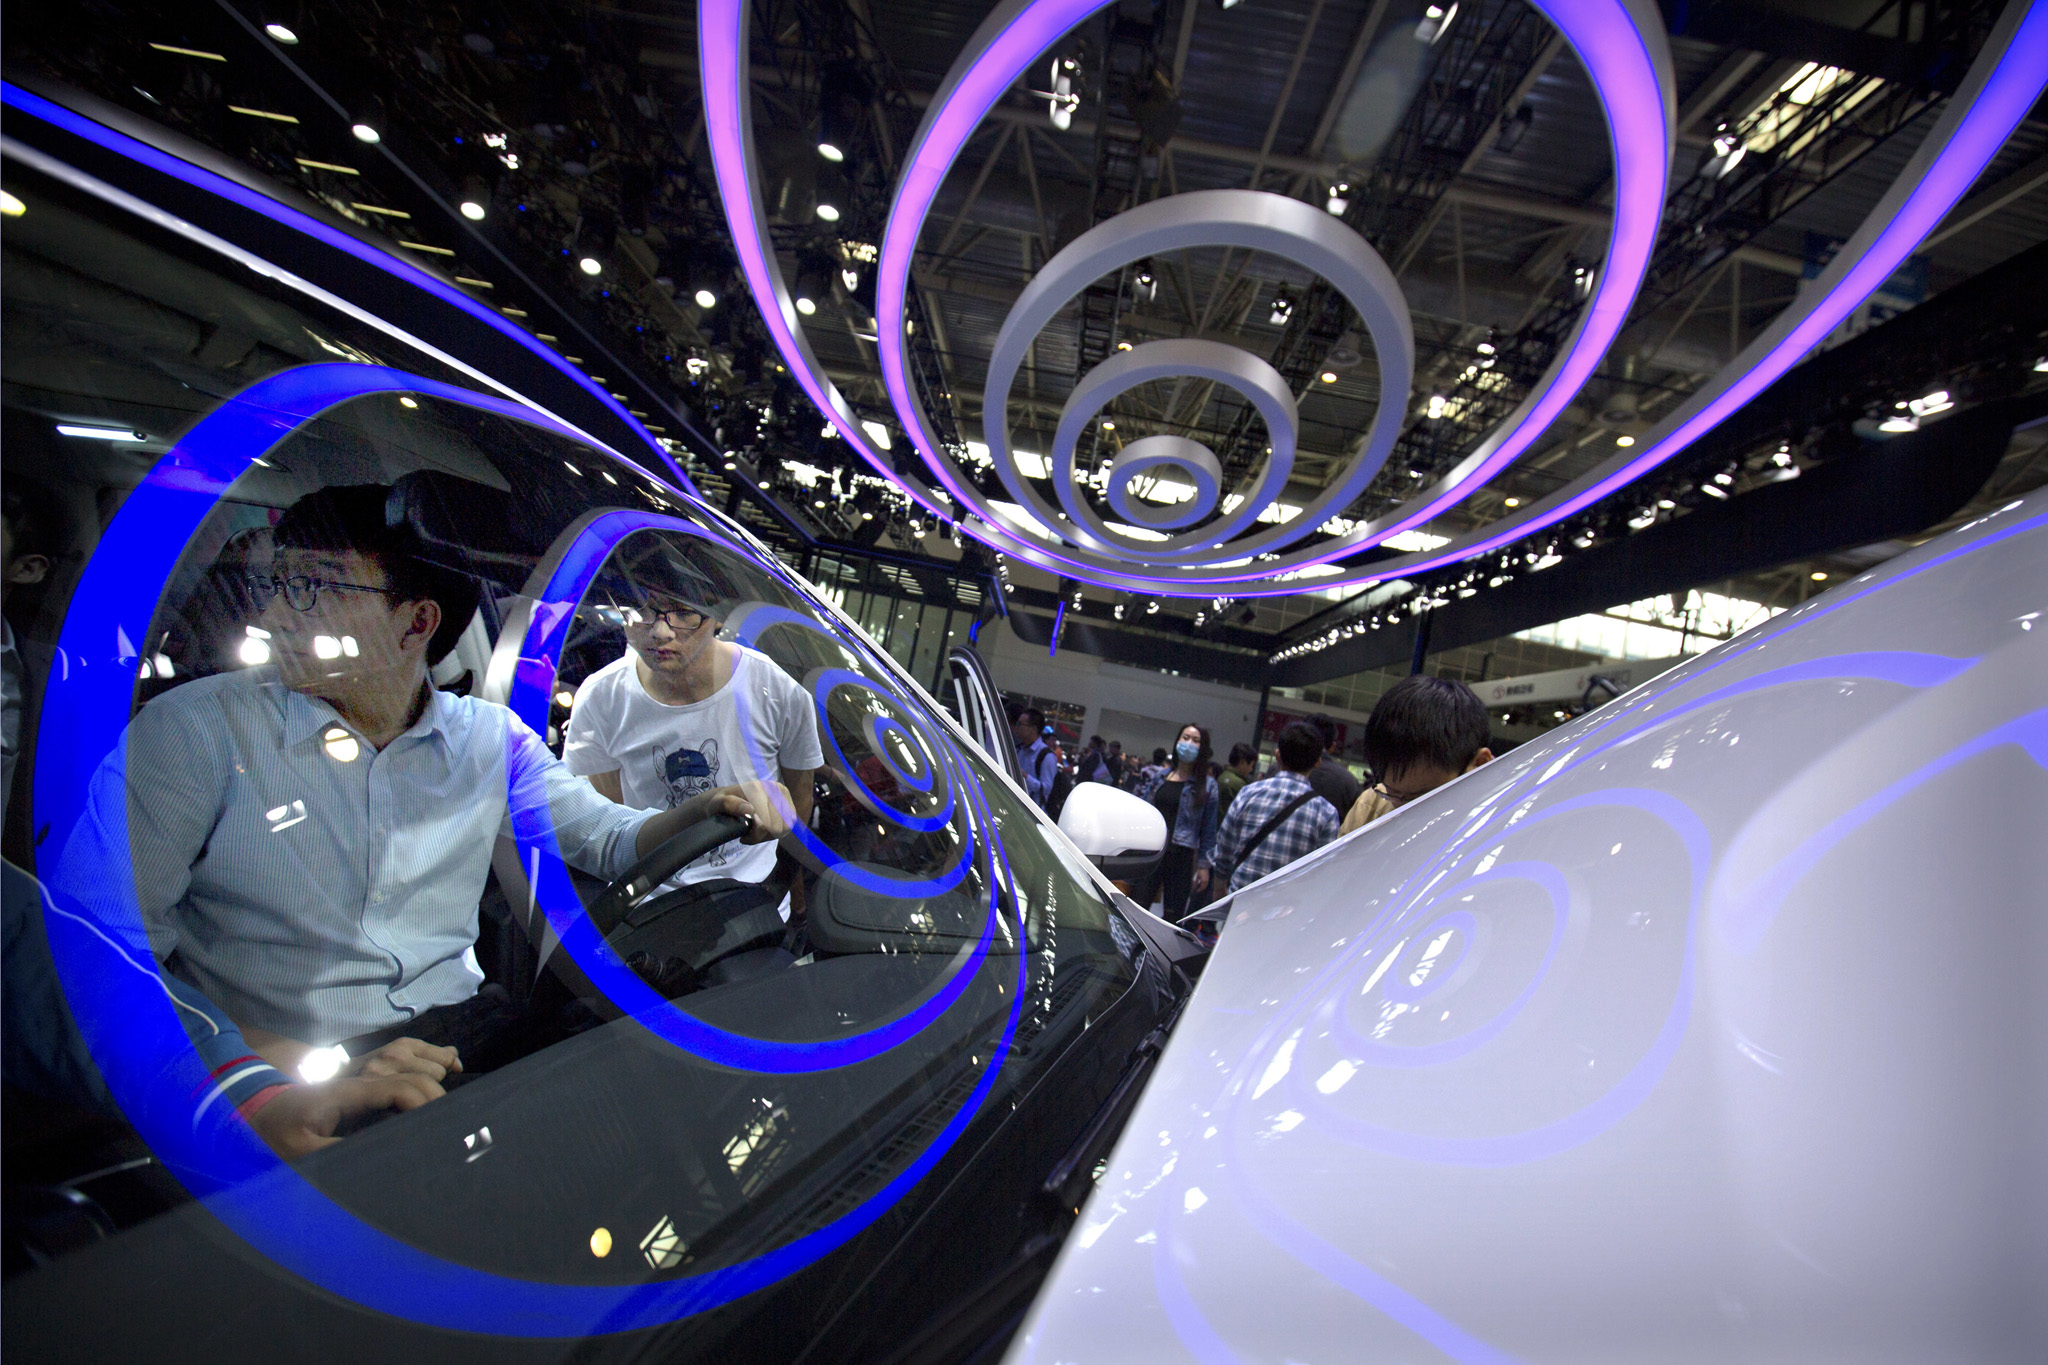 Visitors look at a Boyue SUV by Chinese automaker Geely at the Beijing International Automotive Exhibition in Beijing, Wednesday, April 27, 2016. The auto show, which opened to the public on Wednesday, continues through May 4. (AP Photo/Mark Schiefelbein)